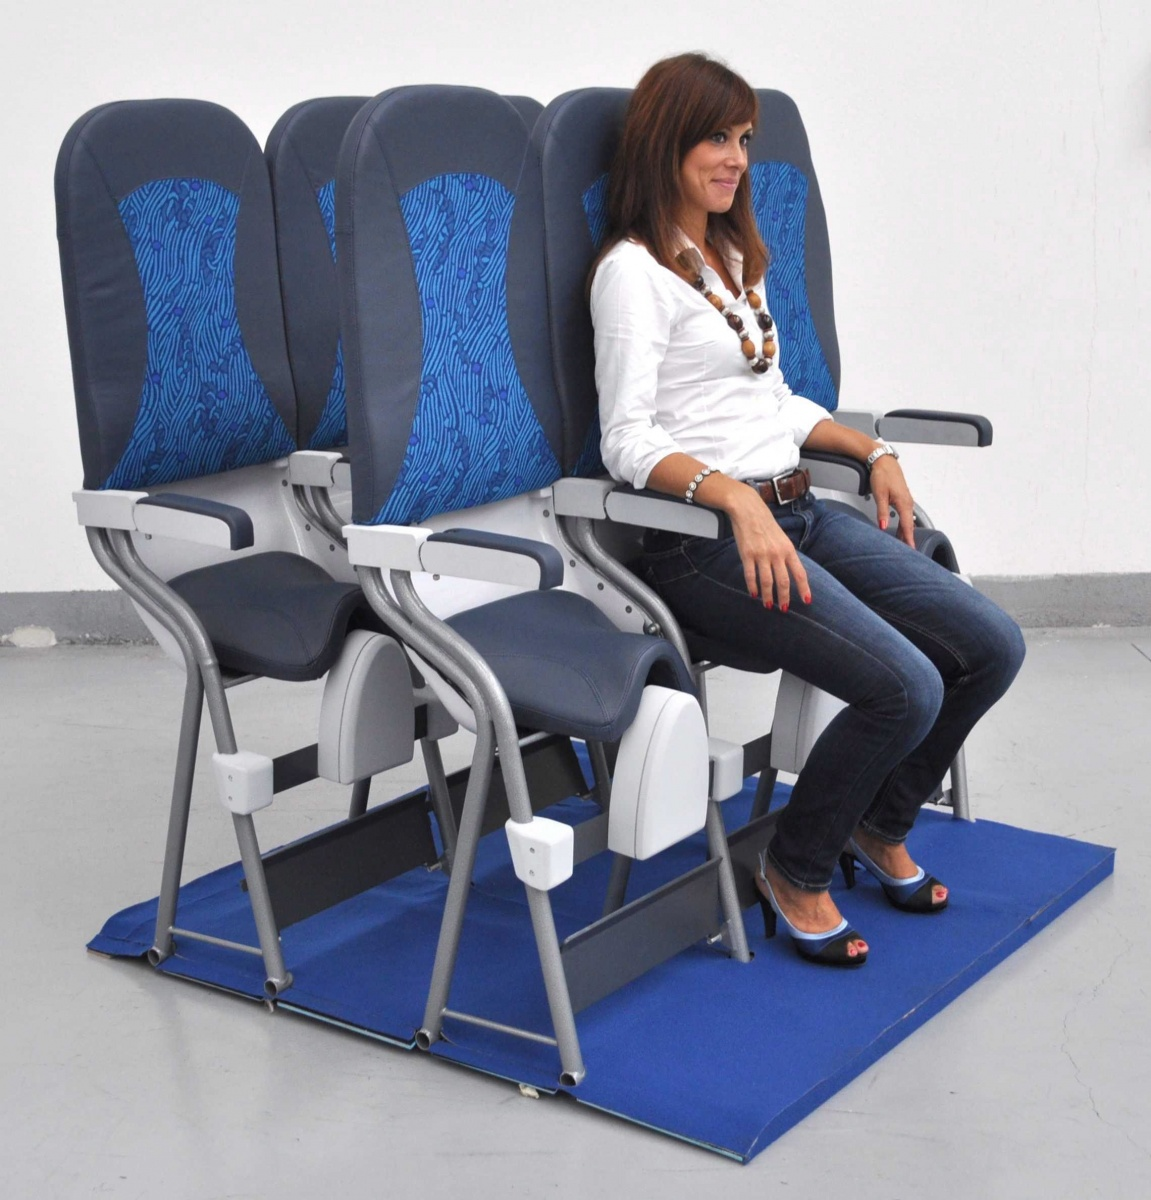 New Standing Seats In Airlines Will Help Cram More Passengers